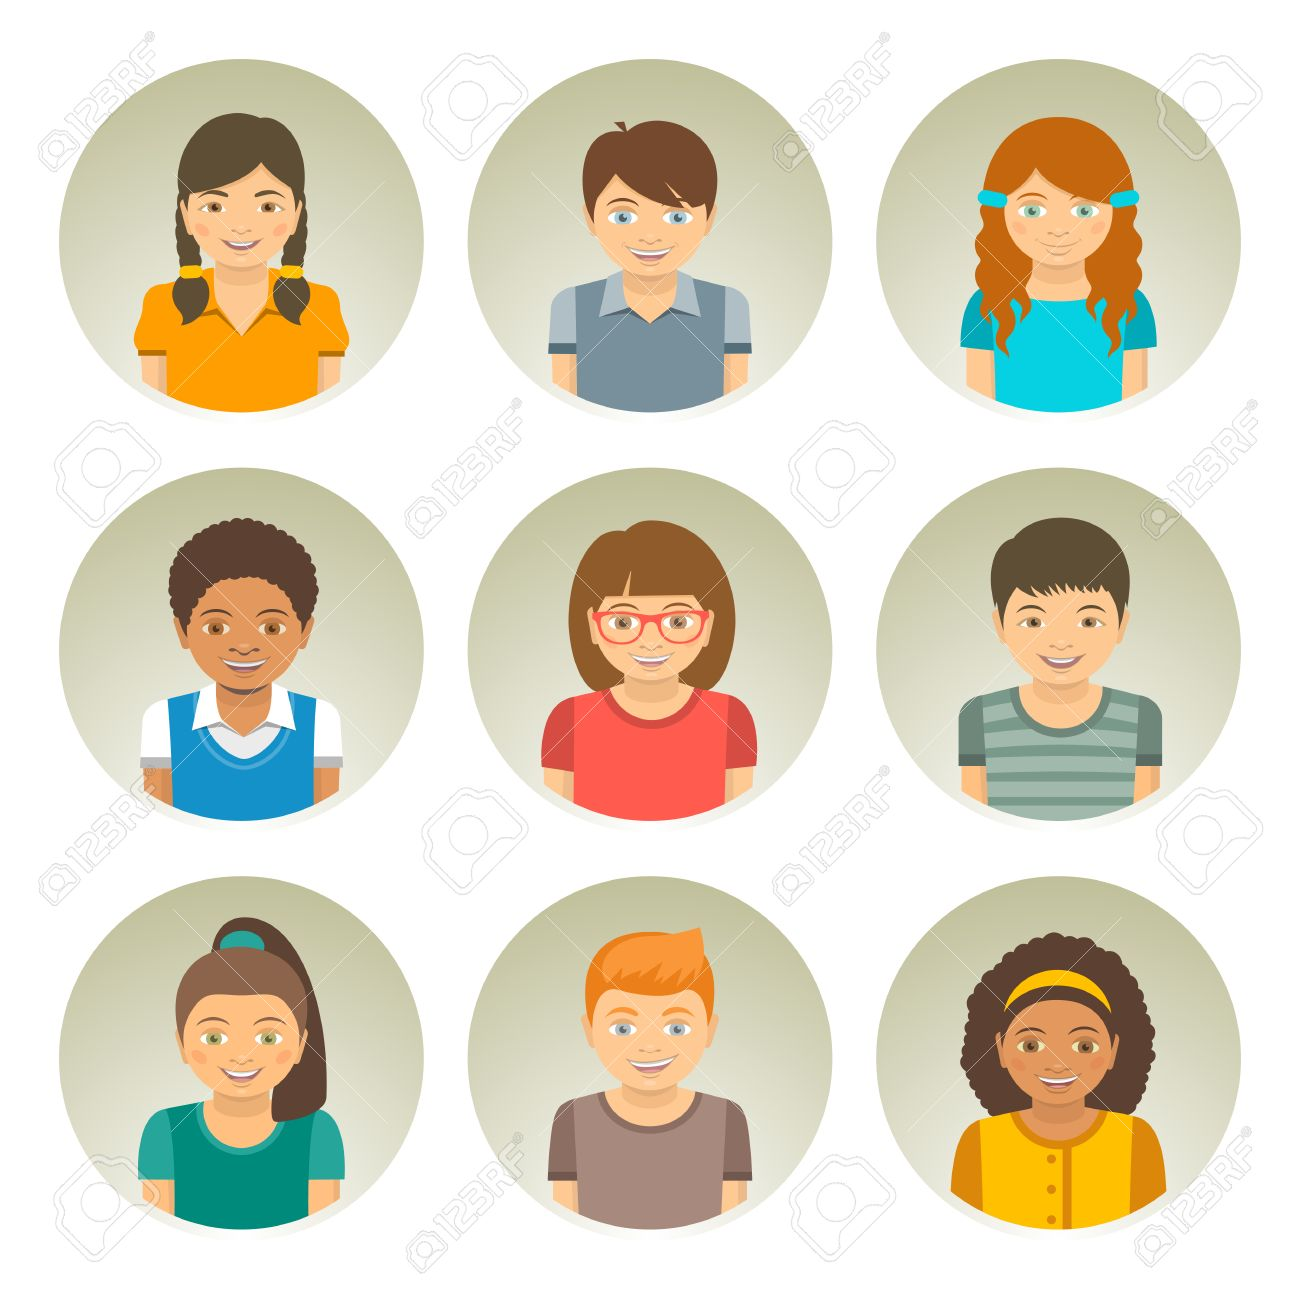 Kids of different races round flat avatars. Happy smiling Caucasian, African American and Asian boys and girls faces. Children characters profile pictures. Portrait infographic cartoon elements - 55146354